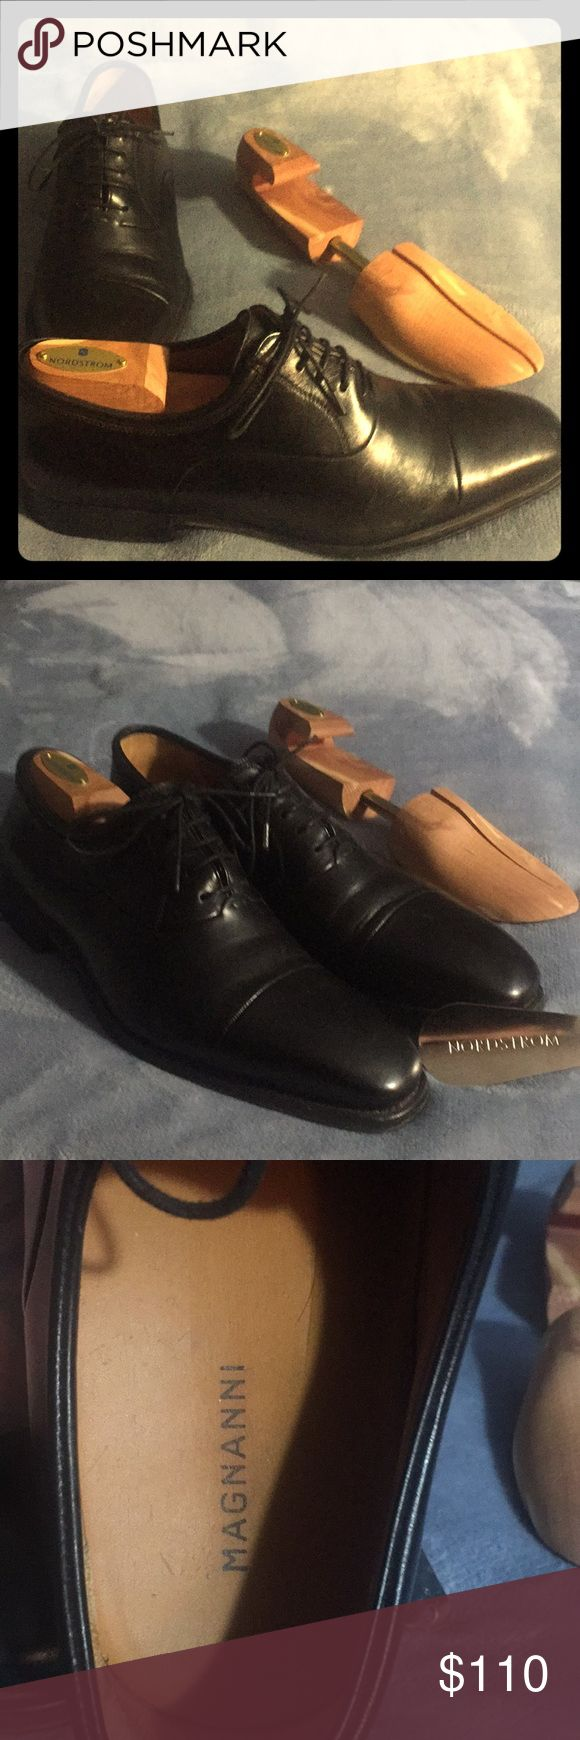 "Magnanni ""Federico"" men's size 9D. These shoes have been very lightly worn..."